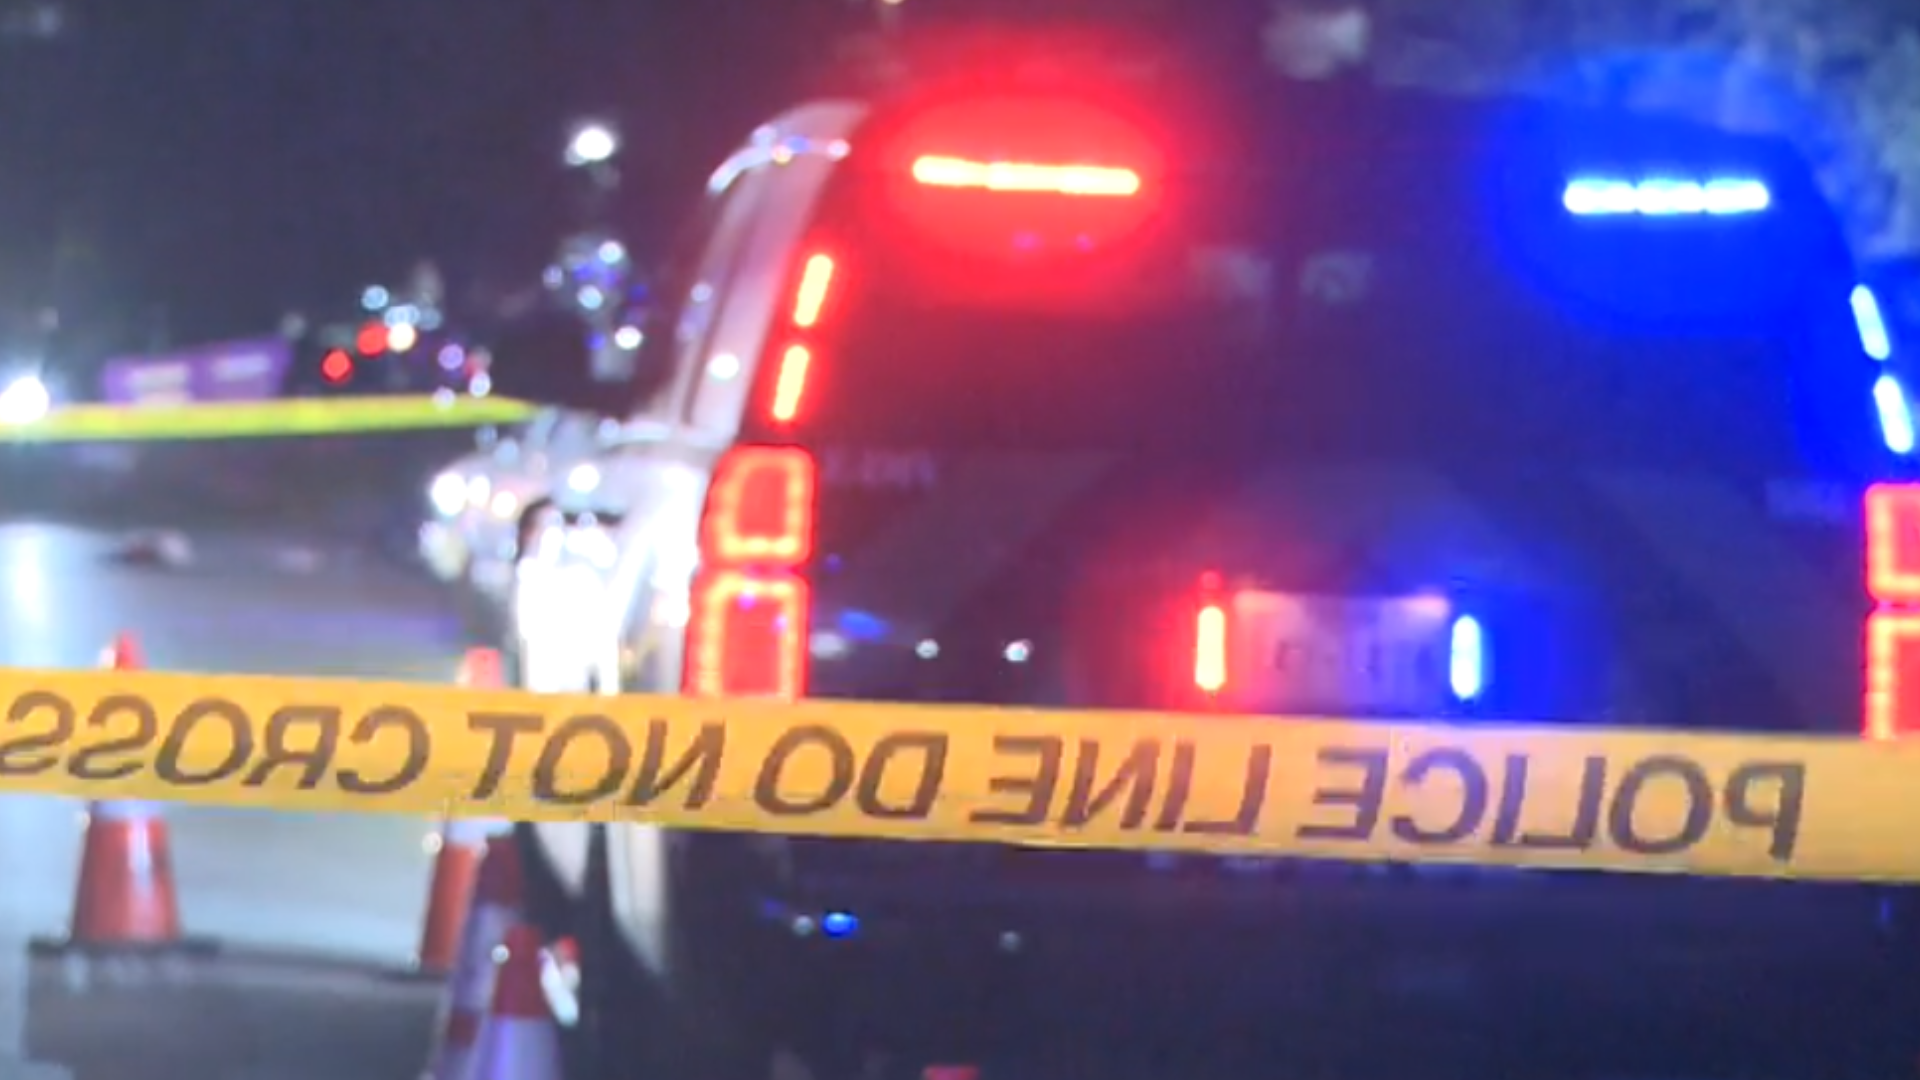 10 Killed; 7 Injured After Violent Weekend Across North Texas